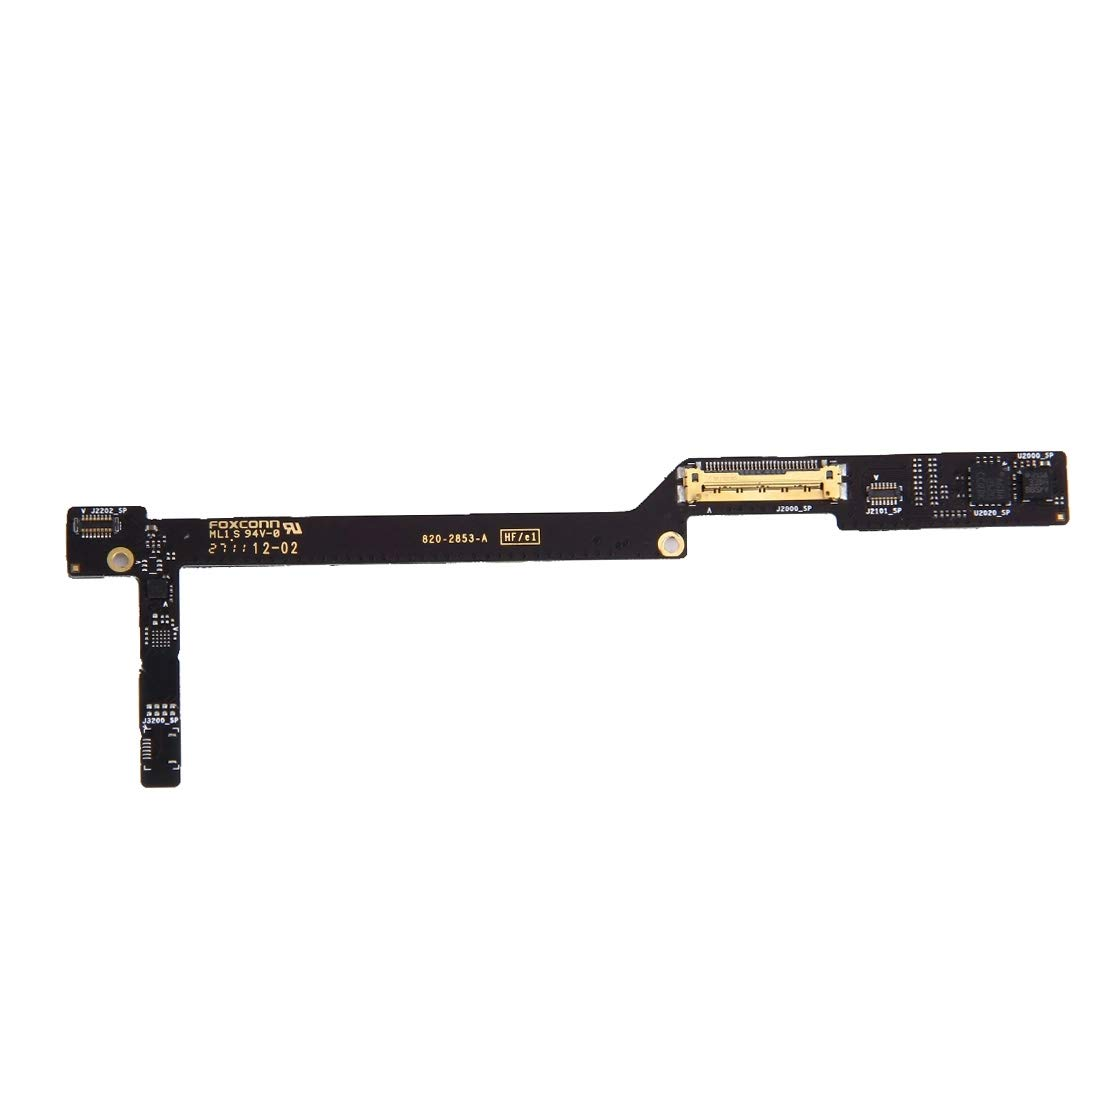 DASHOUU Replacement Parts Parts for iPad LCD Connector Flex Cable for iPad 2(WiFi Version)